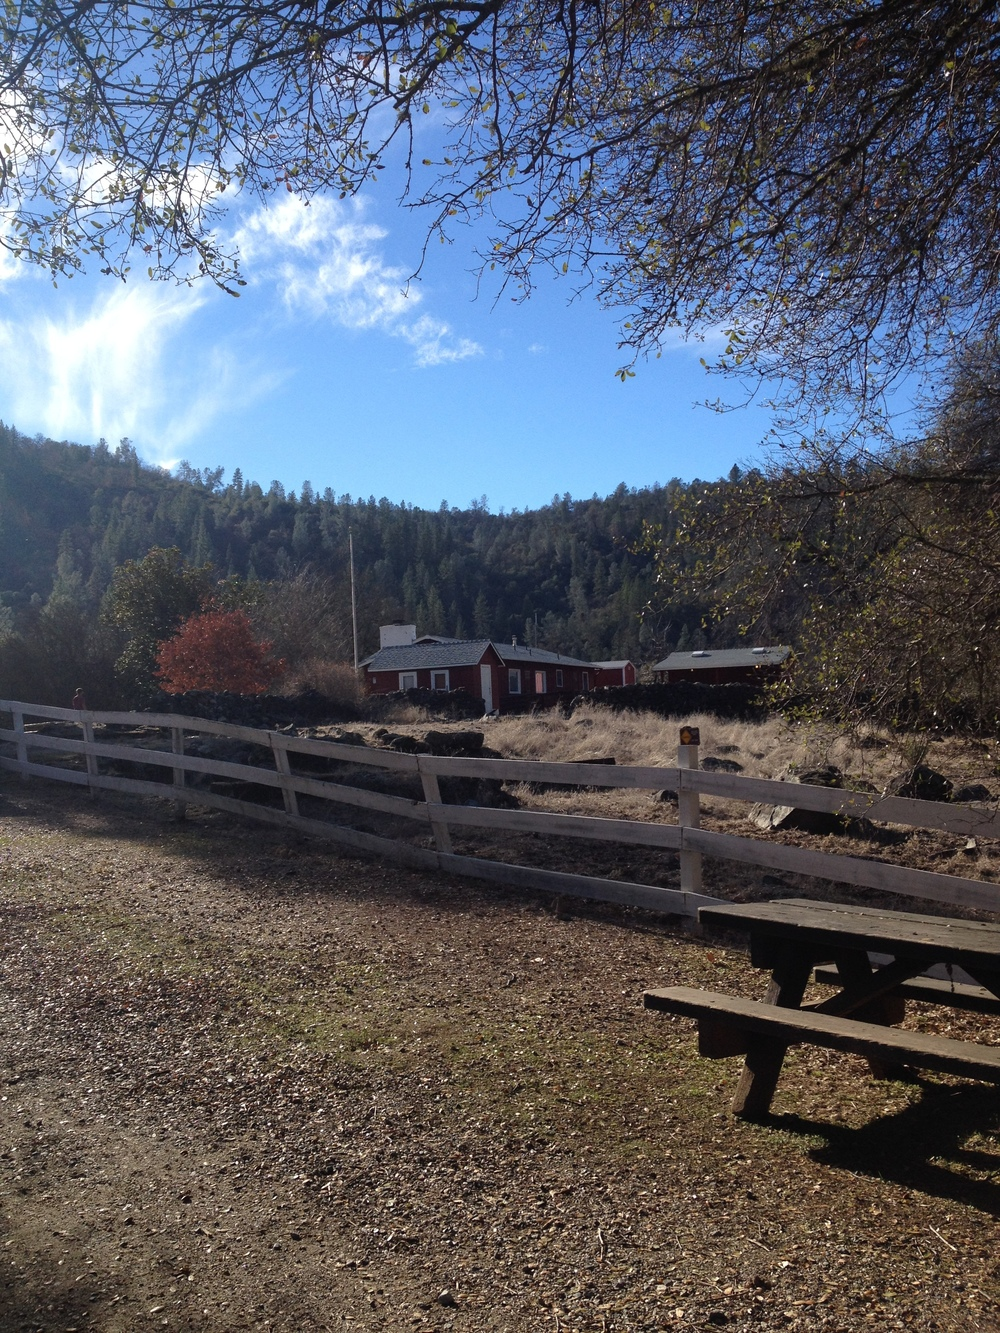 A view of the visitor's center at the South Yuba River State Park. This area reminded me of the East Coast. I can't wait to come back in the summer.